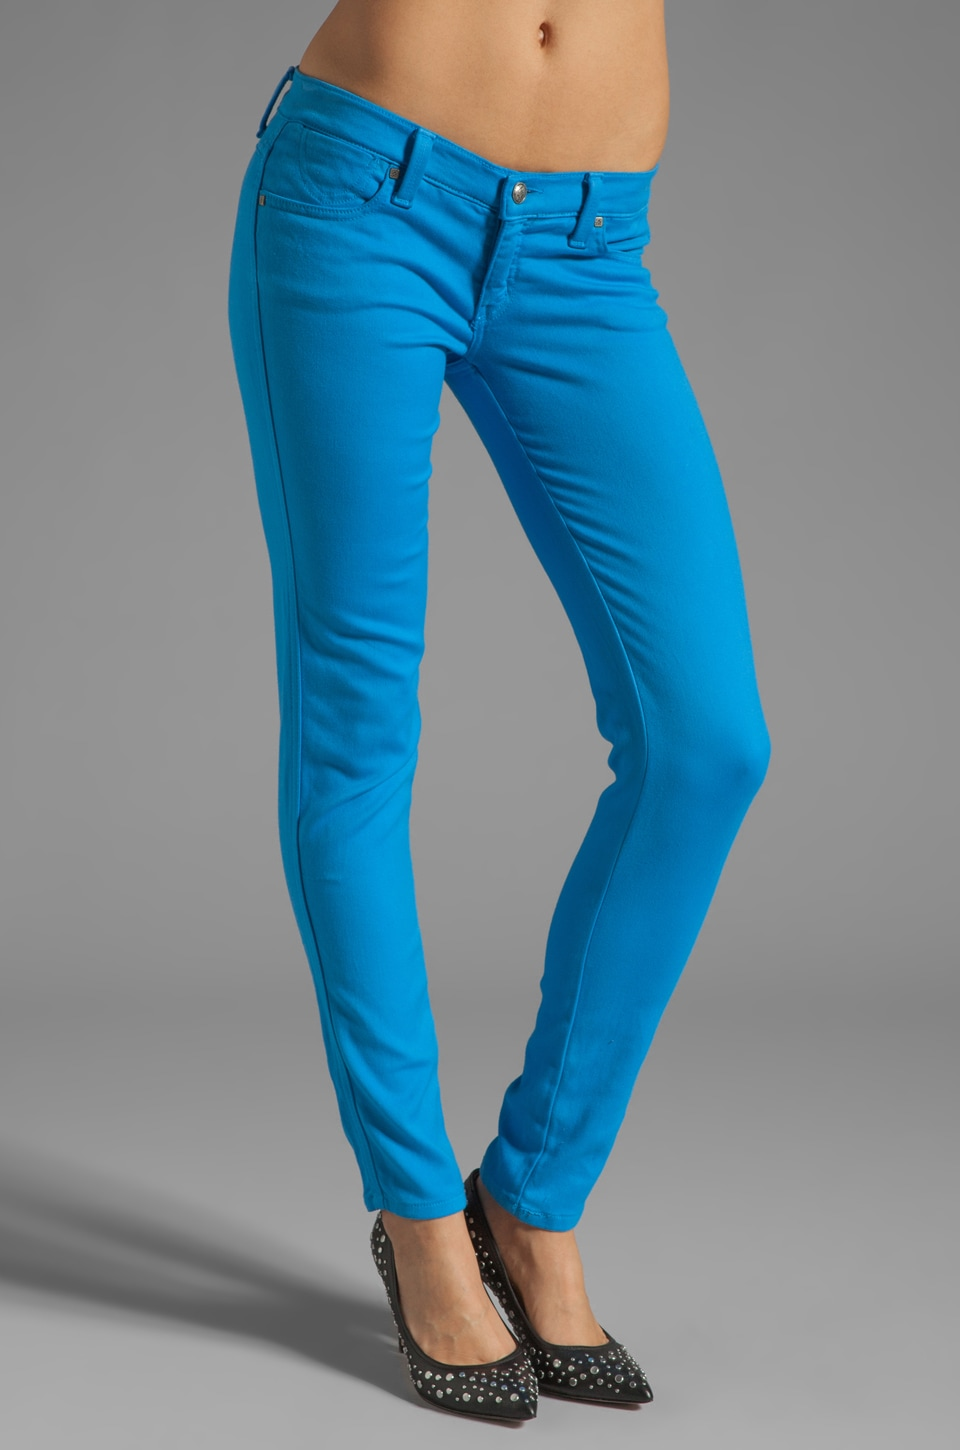 Frankie B. Jeans My BFF Jegging in Azure